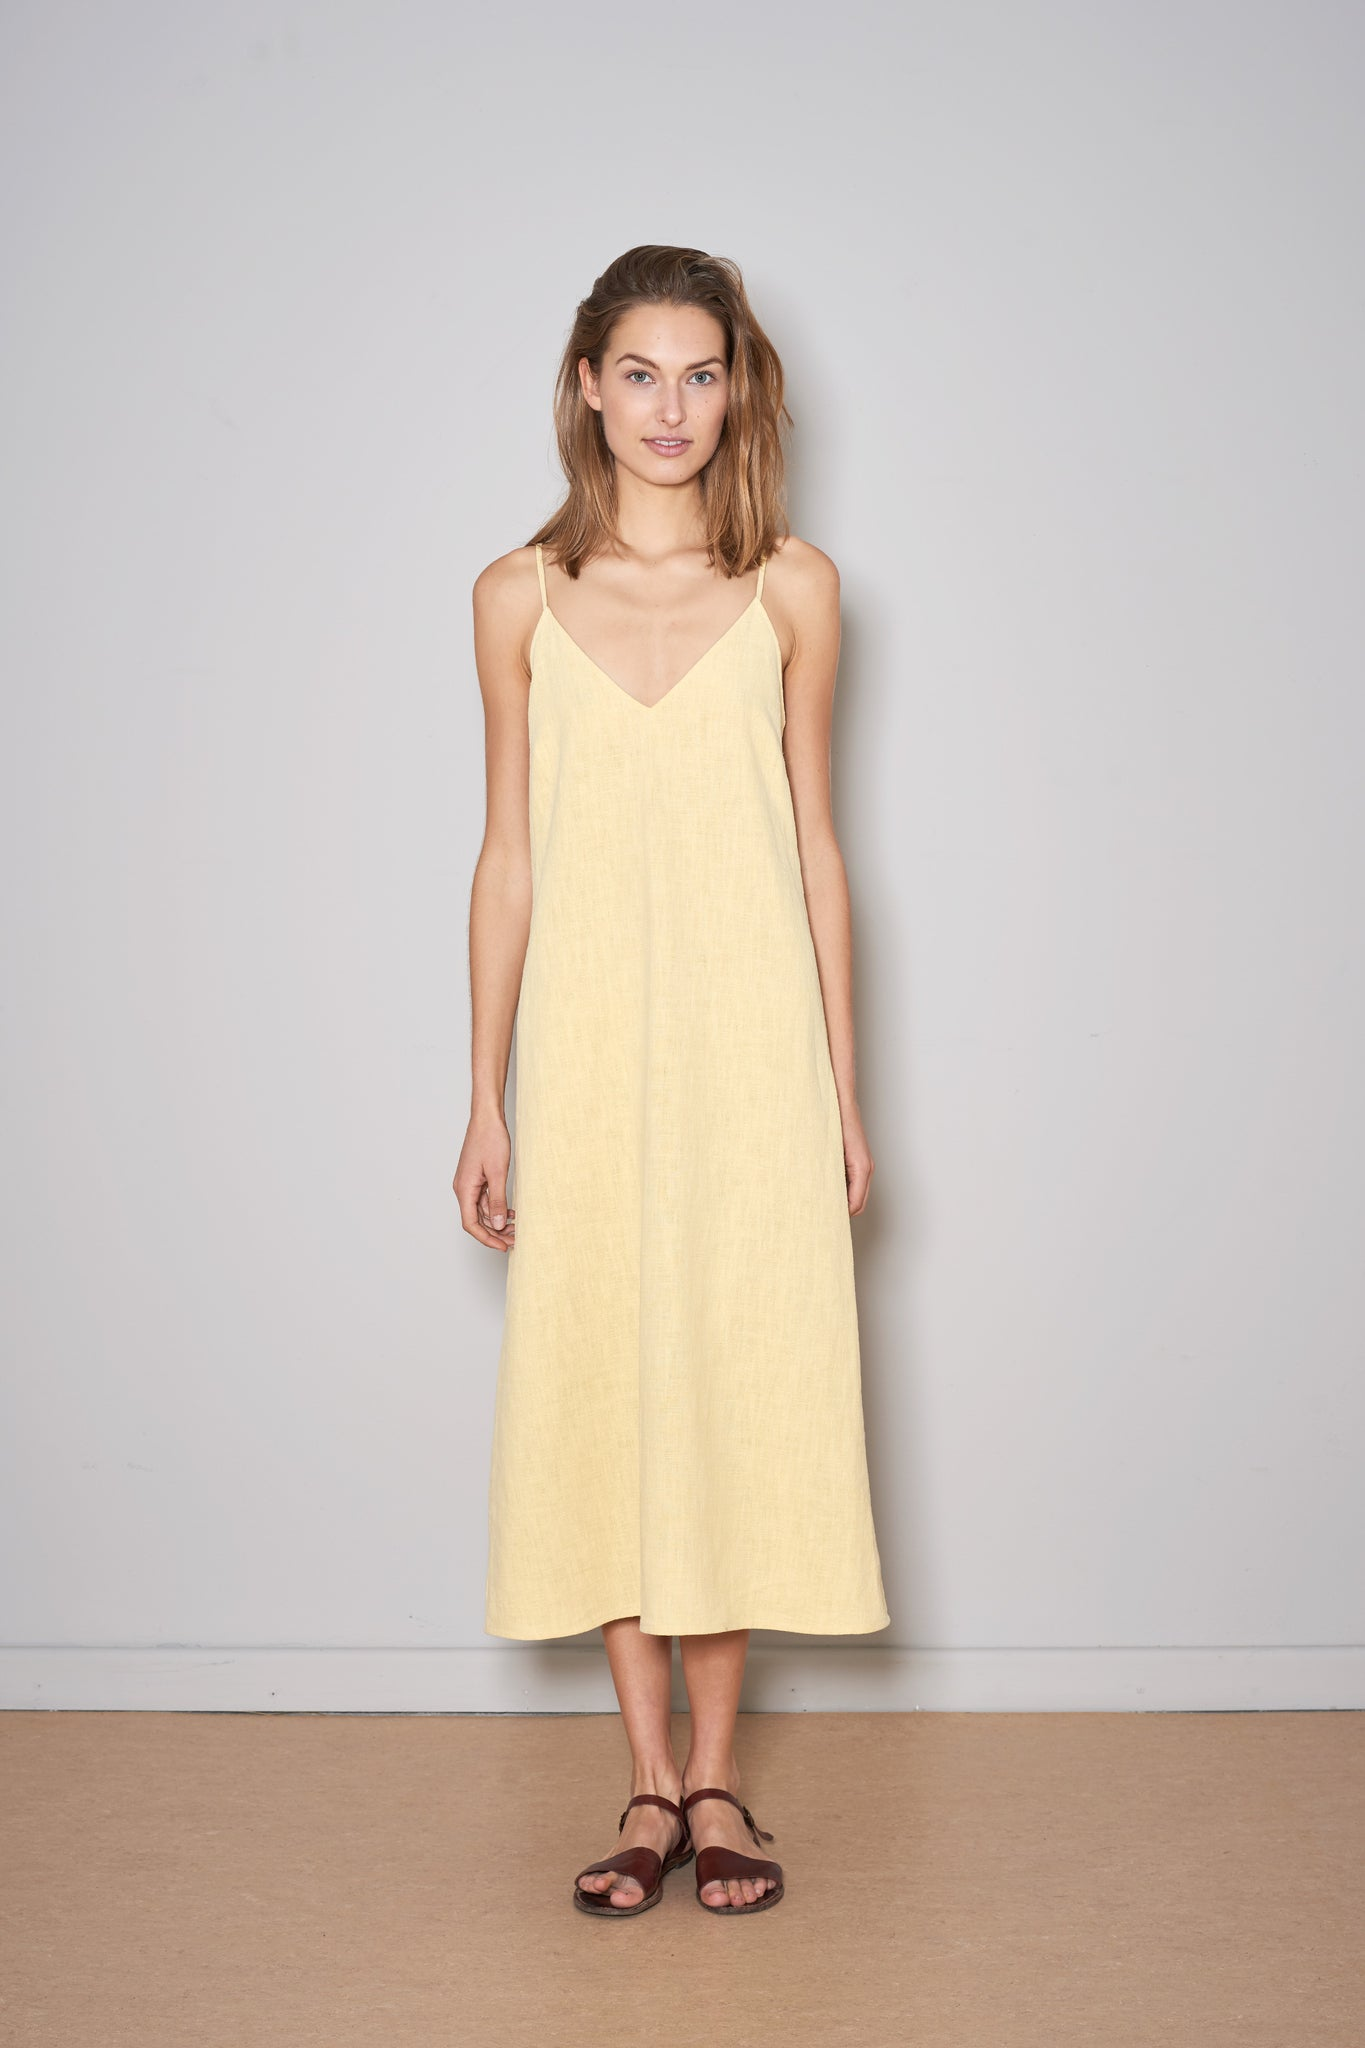 METHA LINEN DRESS vanilla linen